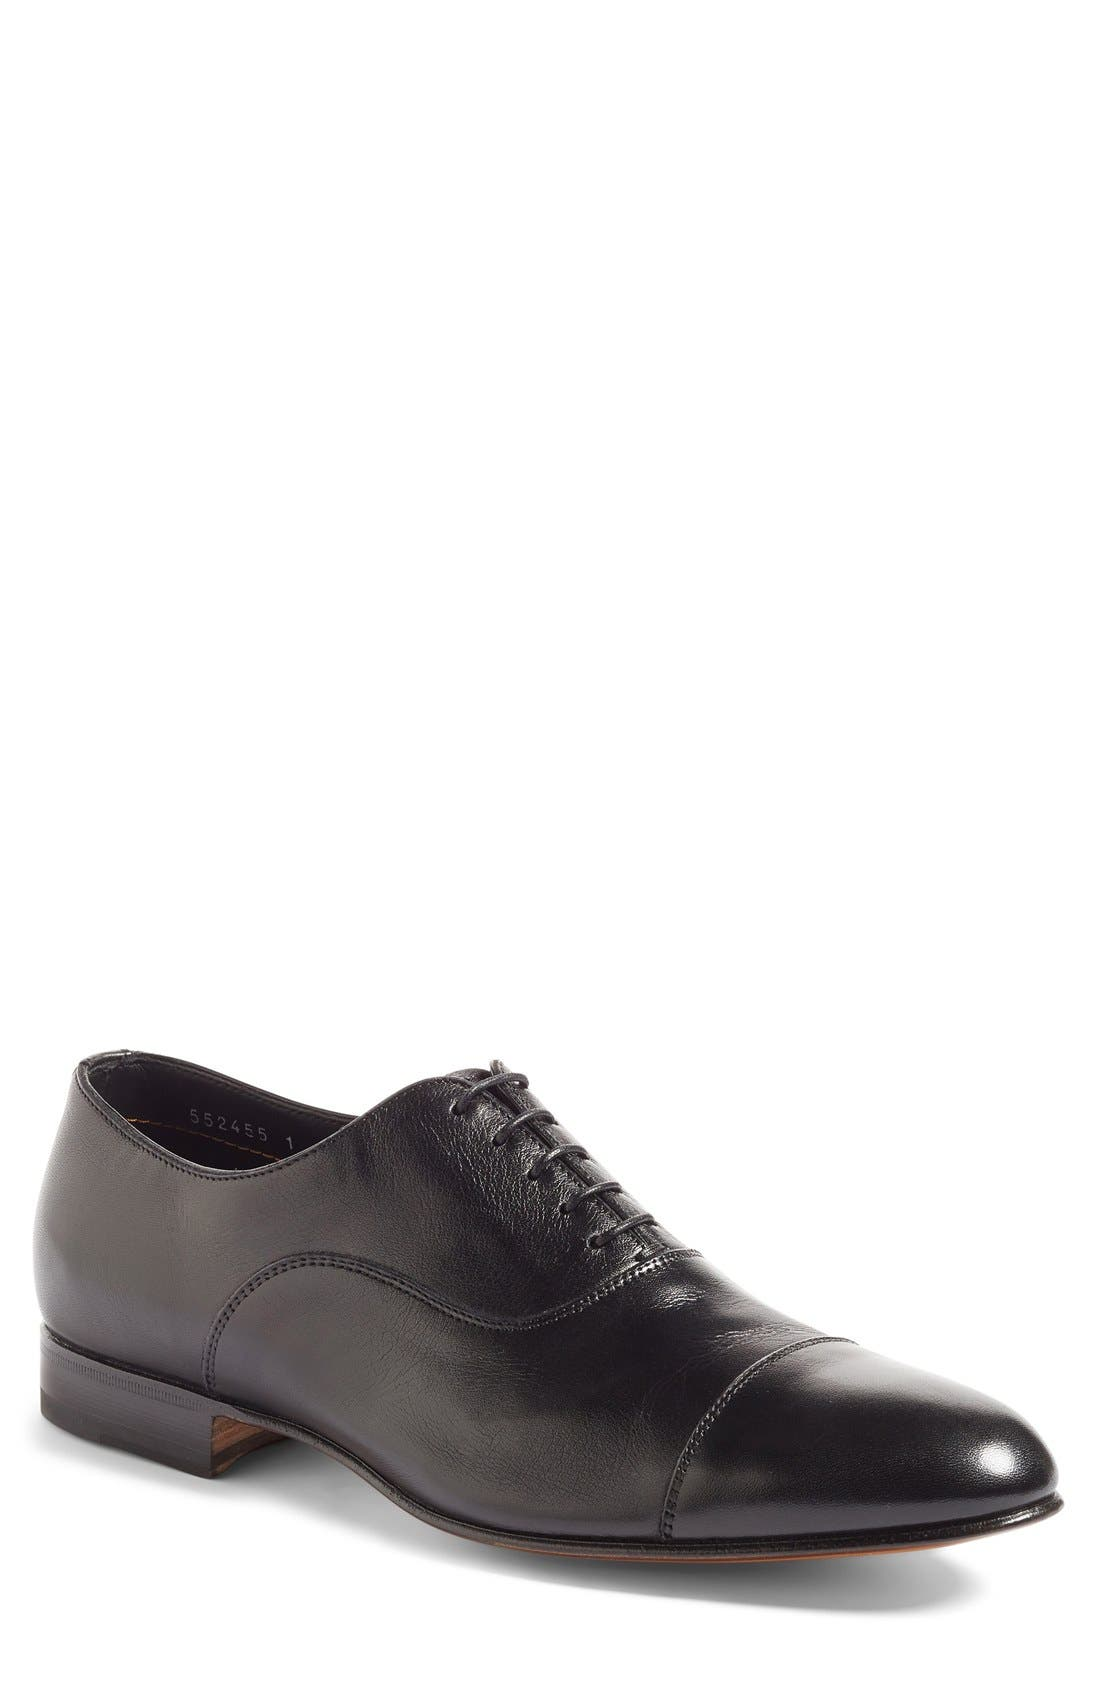 SANTONI, Darian Cap Toe Oxford, Main thumbnail 1, color, BLACK LEATHER